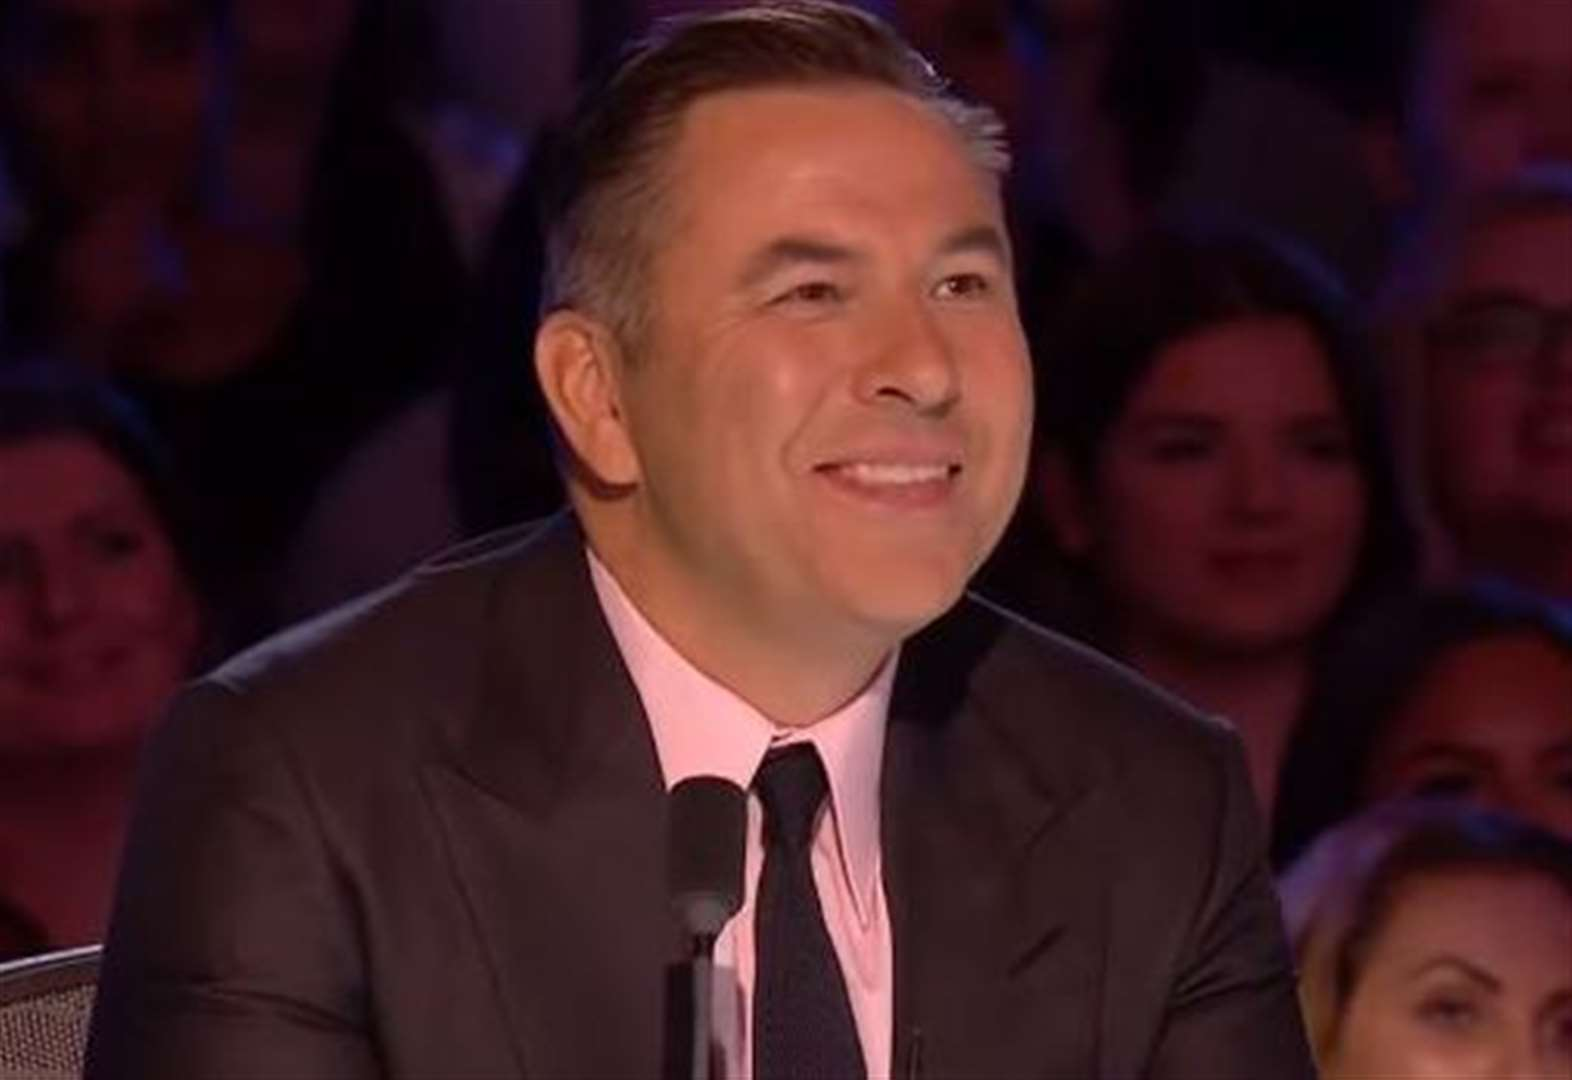 Billionaire Boy's David Walliams on how he'd spend a billion pounds